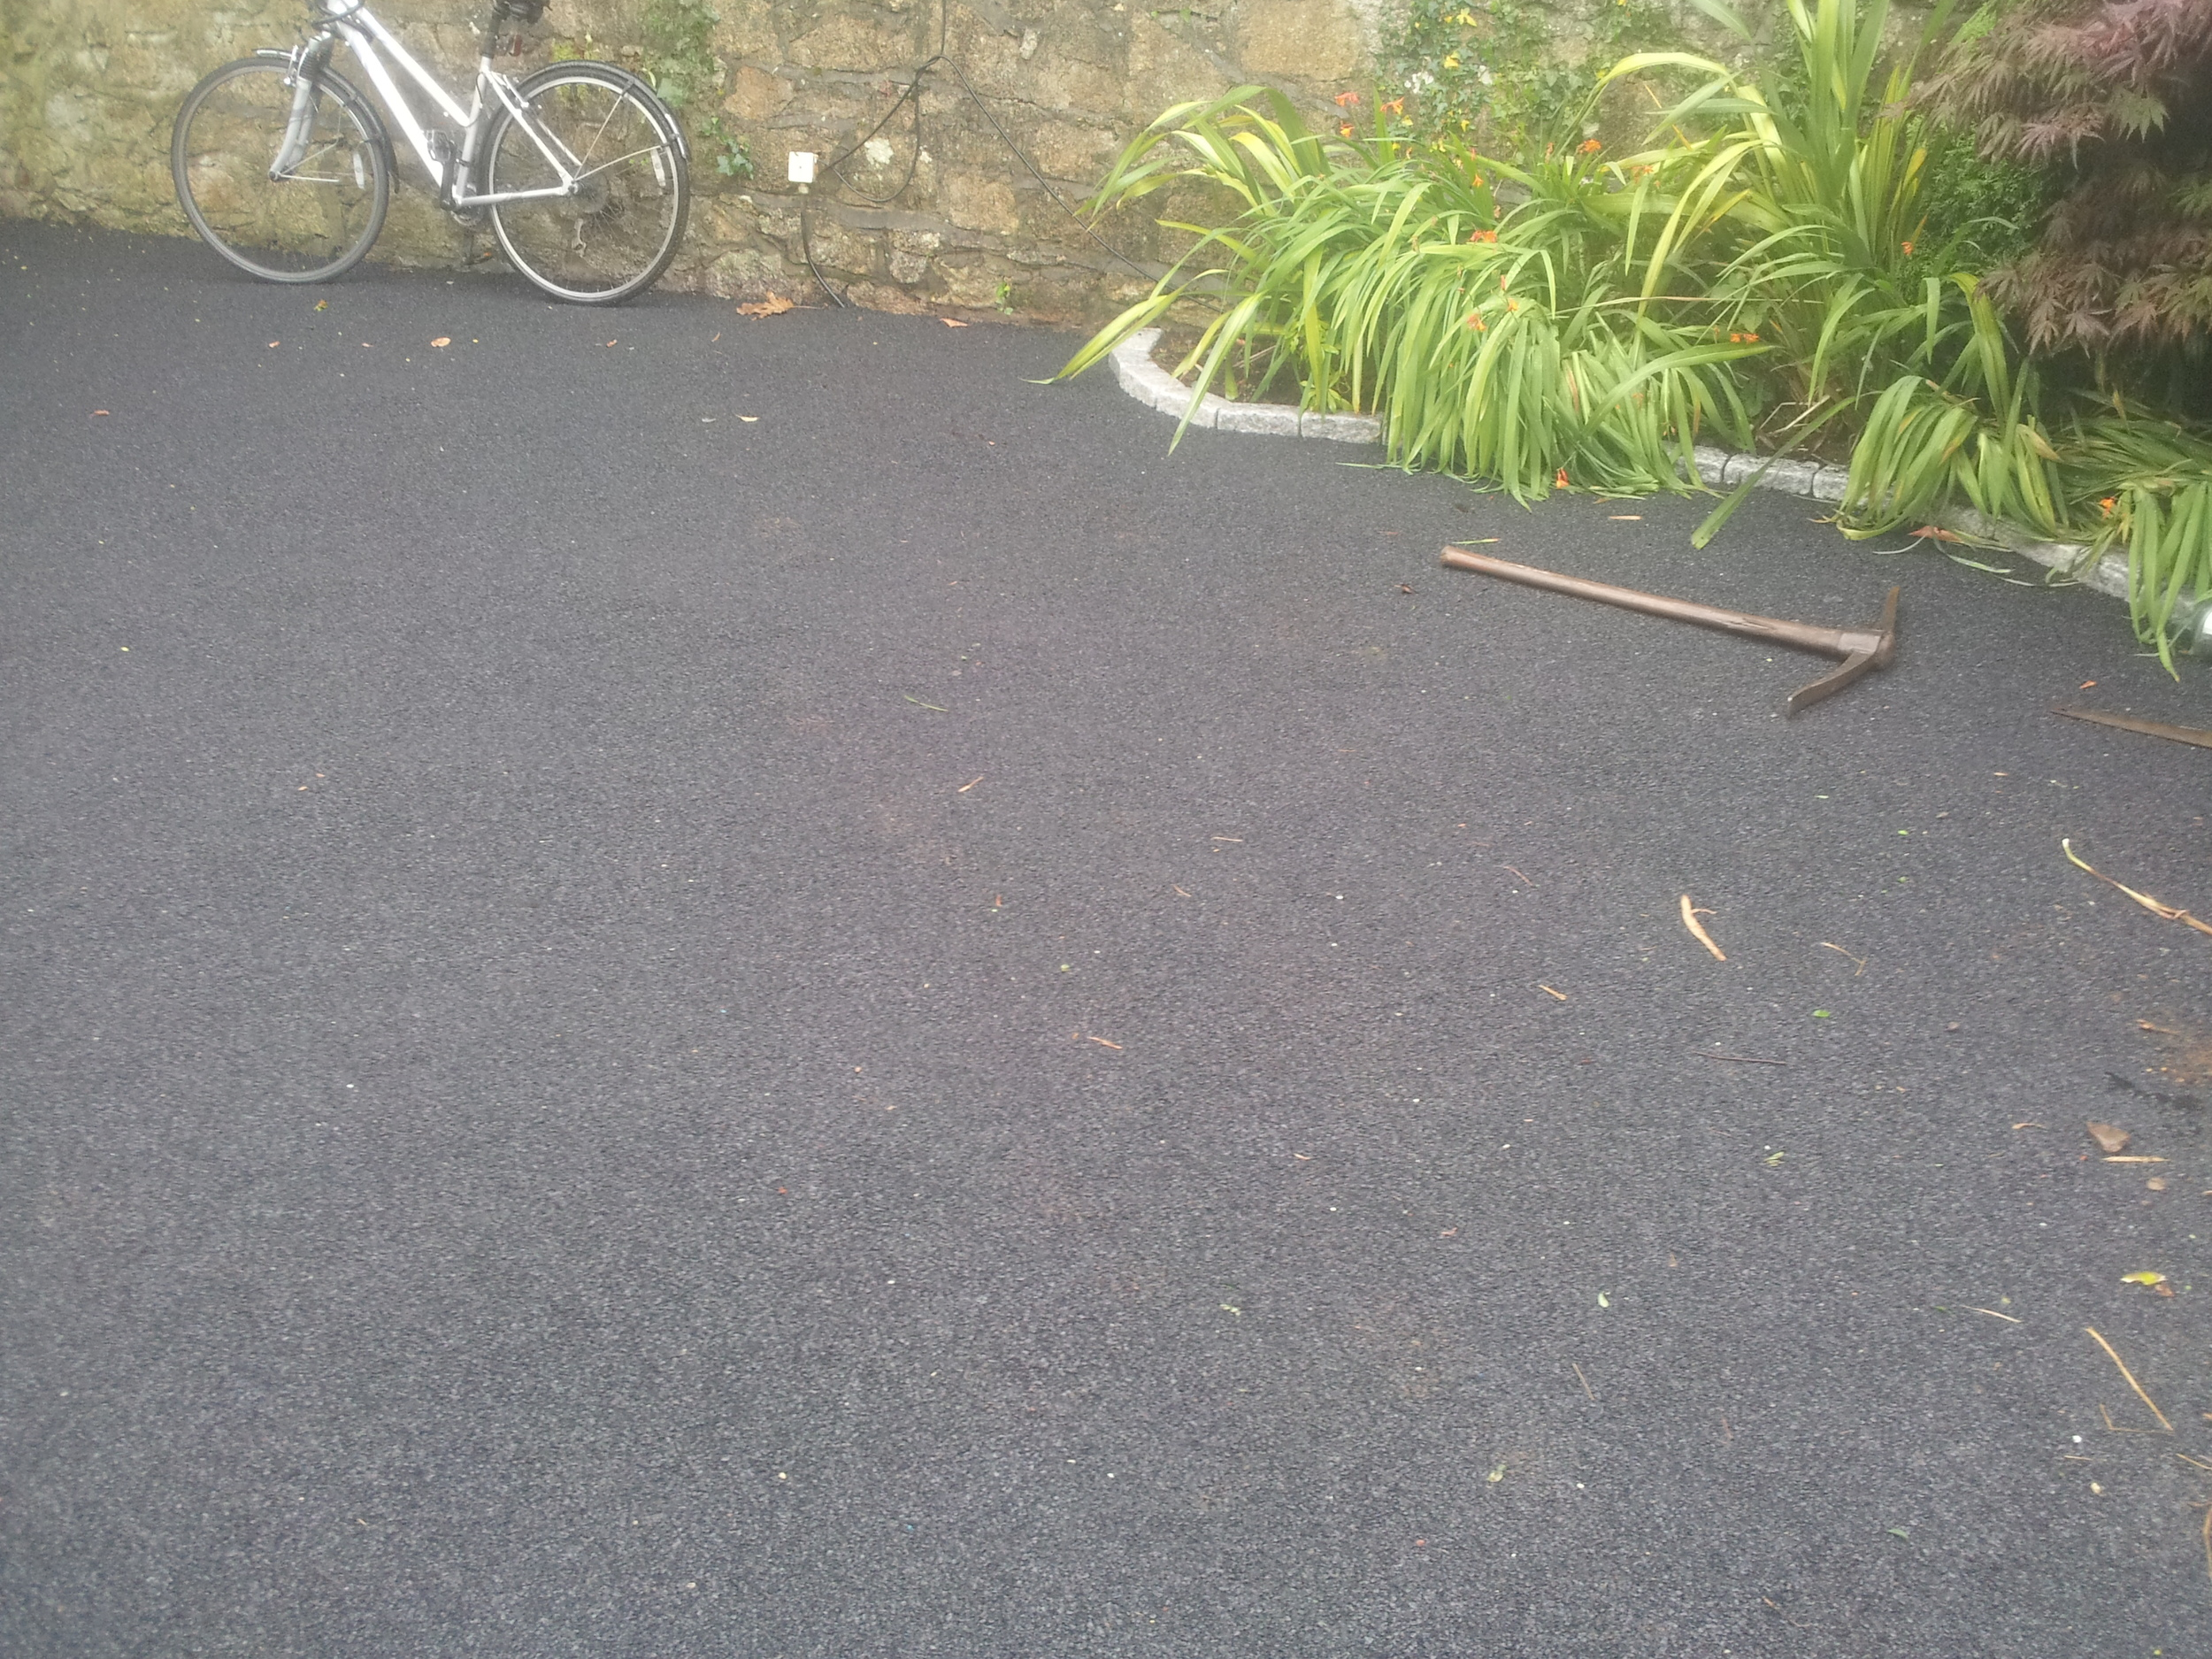 crumb rubber substrate for grass